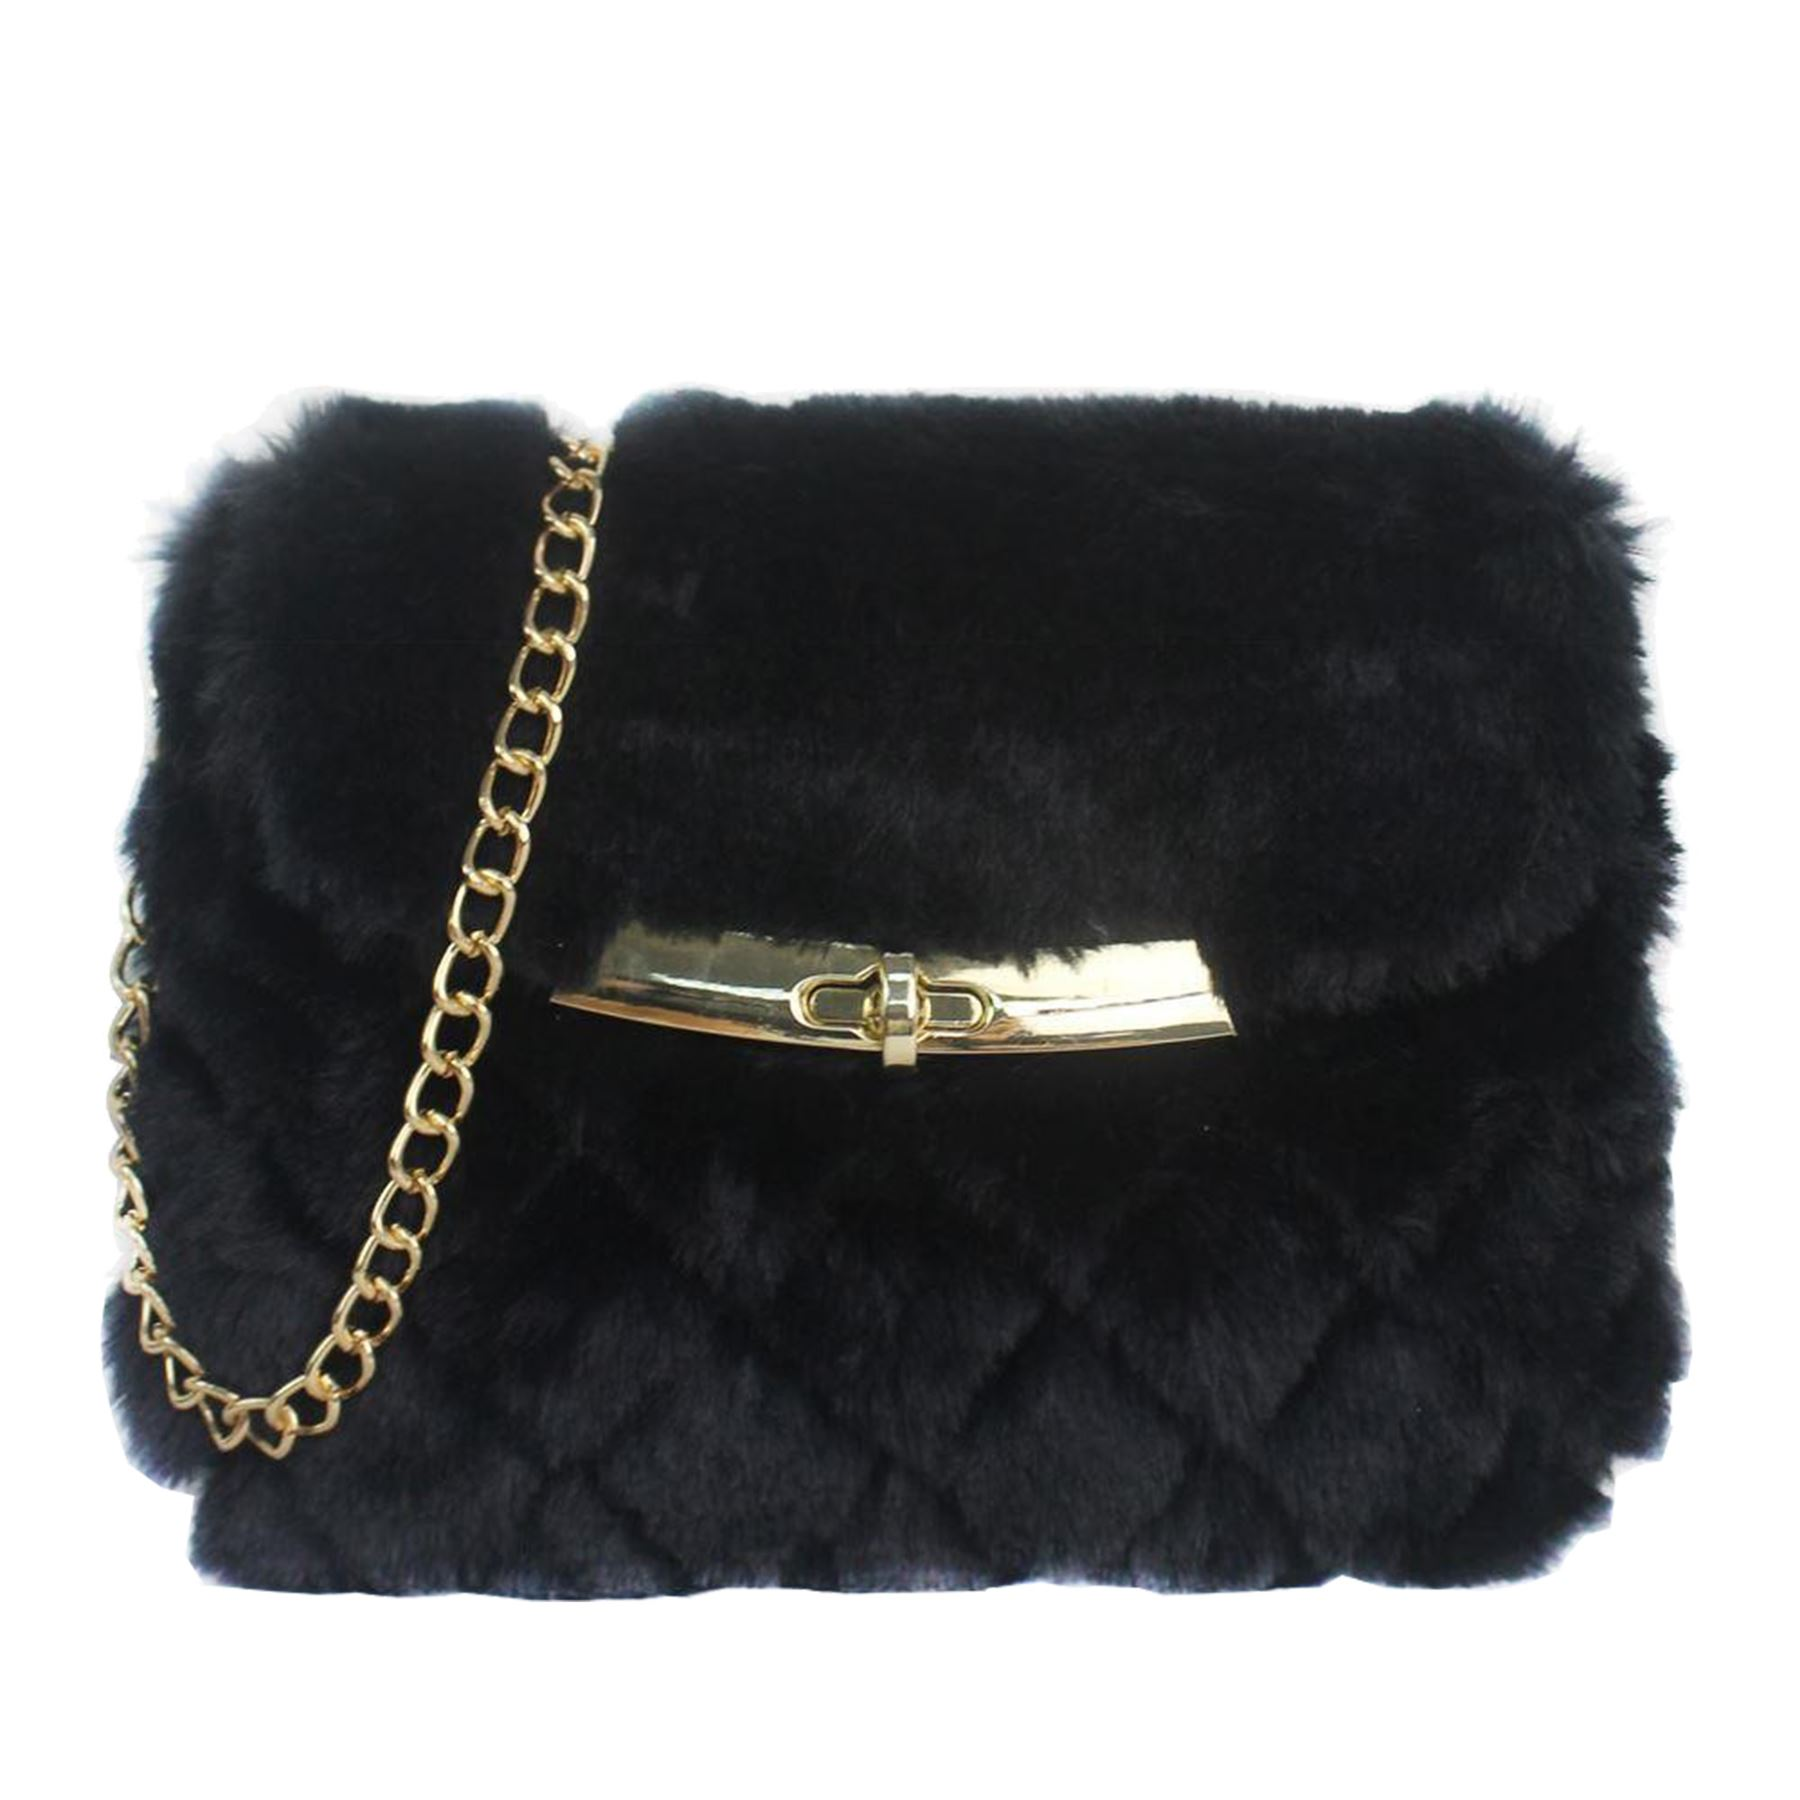 e65d8d1a3d5 Details about New Stylish Ladies Faux Fur Quilted Gold Tone Crossbody Chain  Bag